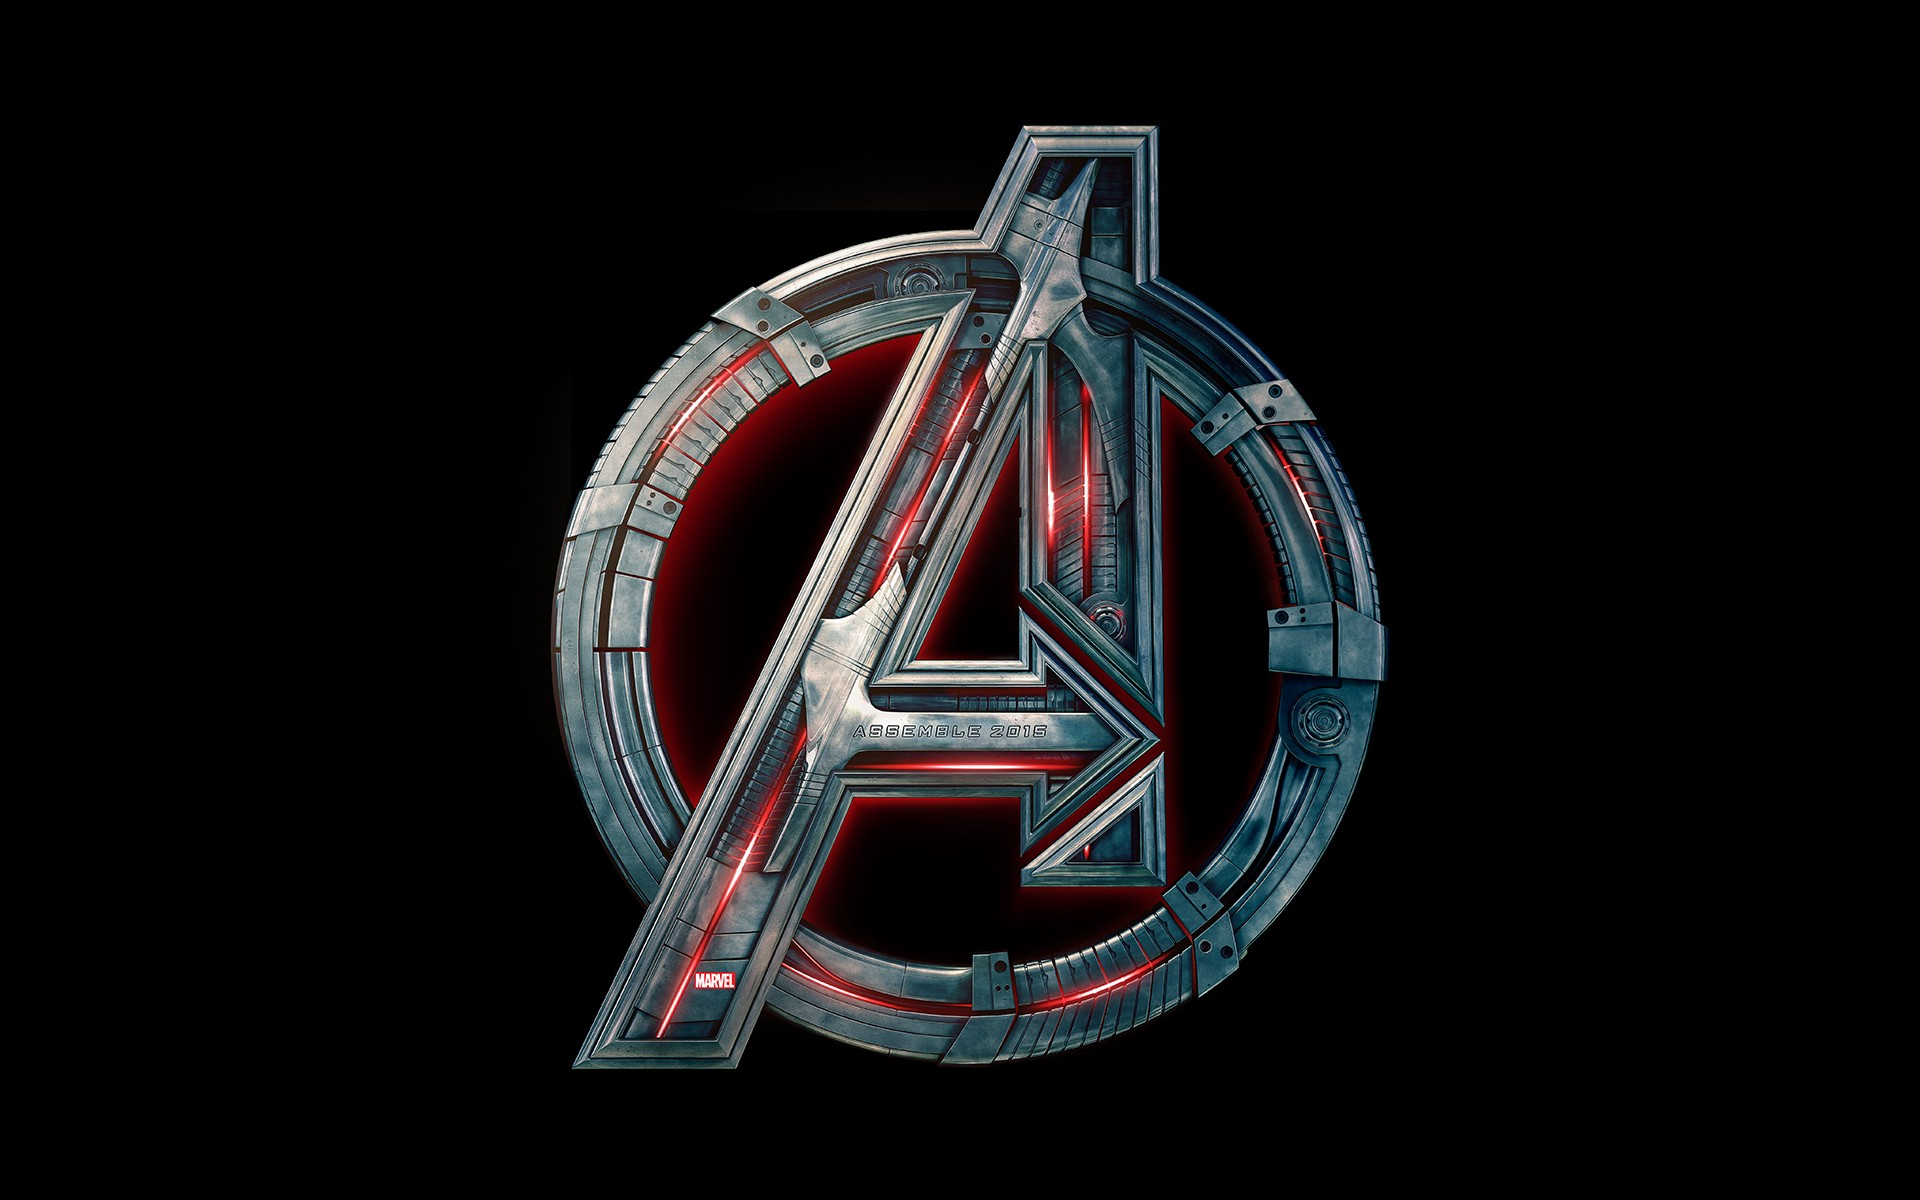 movies illustration symbol text design art shape avengers